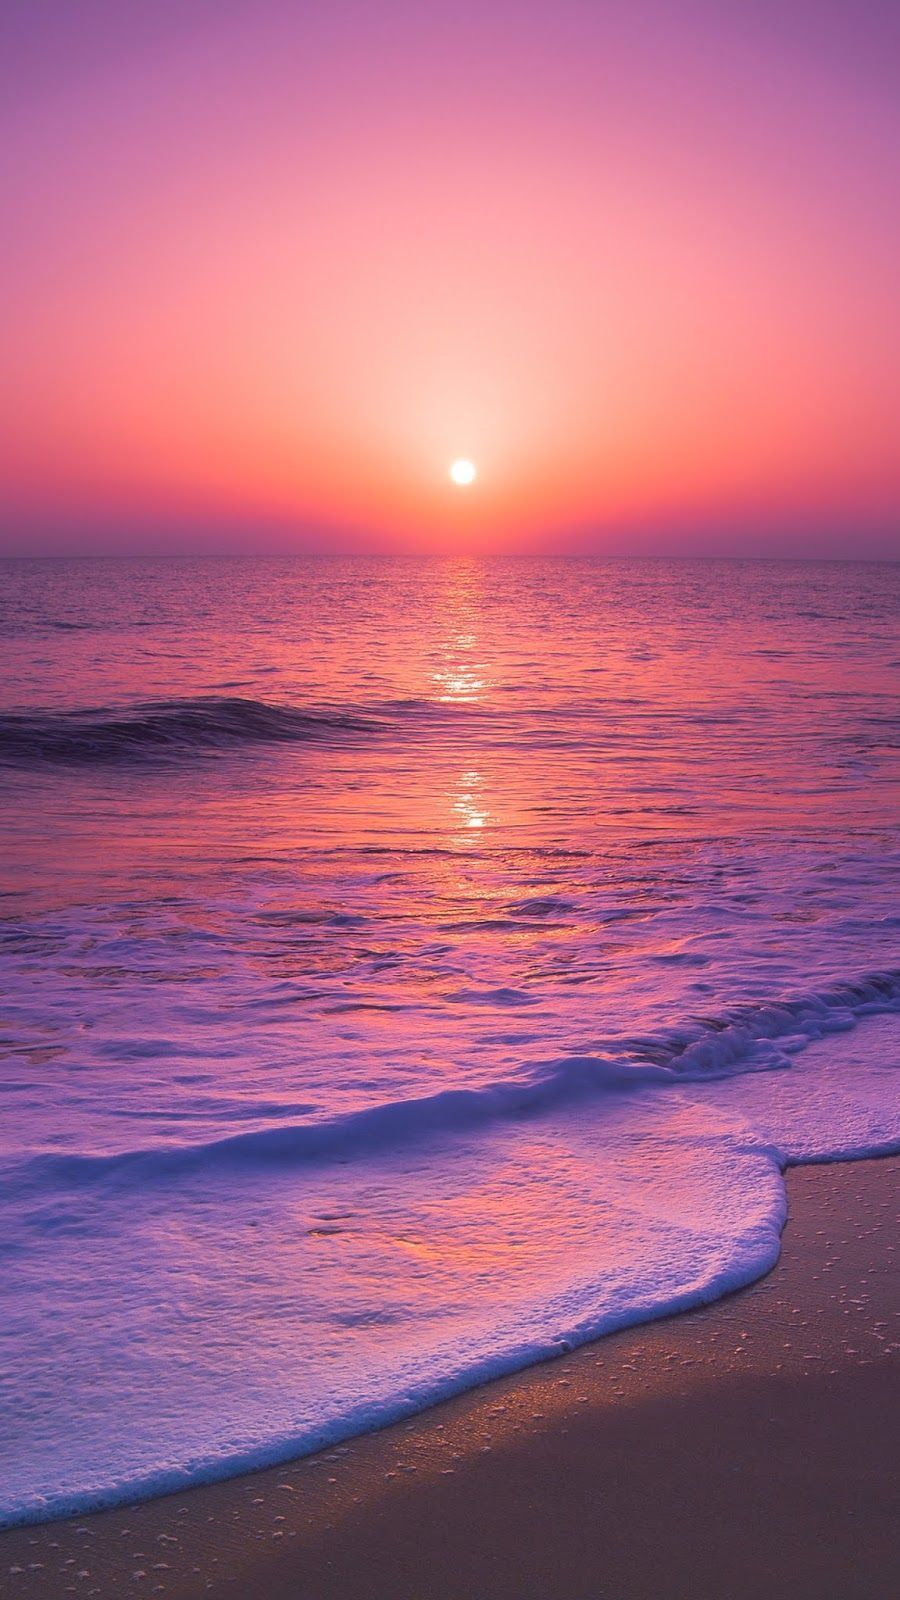 20 Iphone Wallpapers Hd Quality Free Download Beach Sunset Wallpaper Sunset Wallpaper Beach Wallpaper